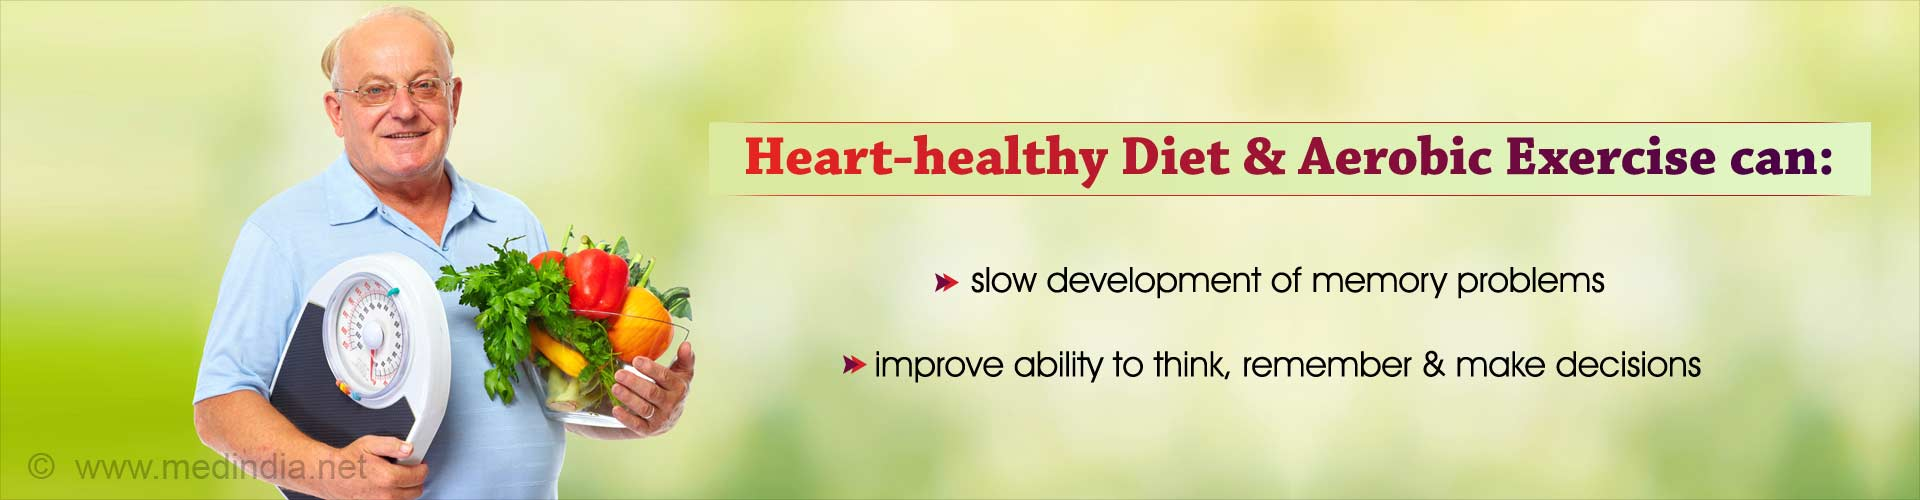 Heart-healthy diet and aerobic exercise can slow development of memory problems, improve ability to think, remember and make decisions.